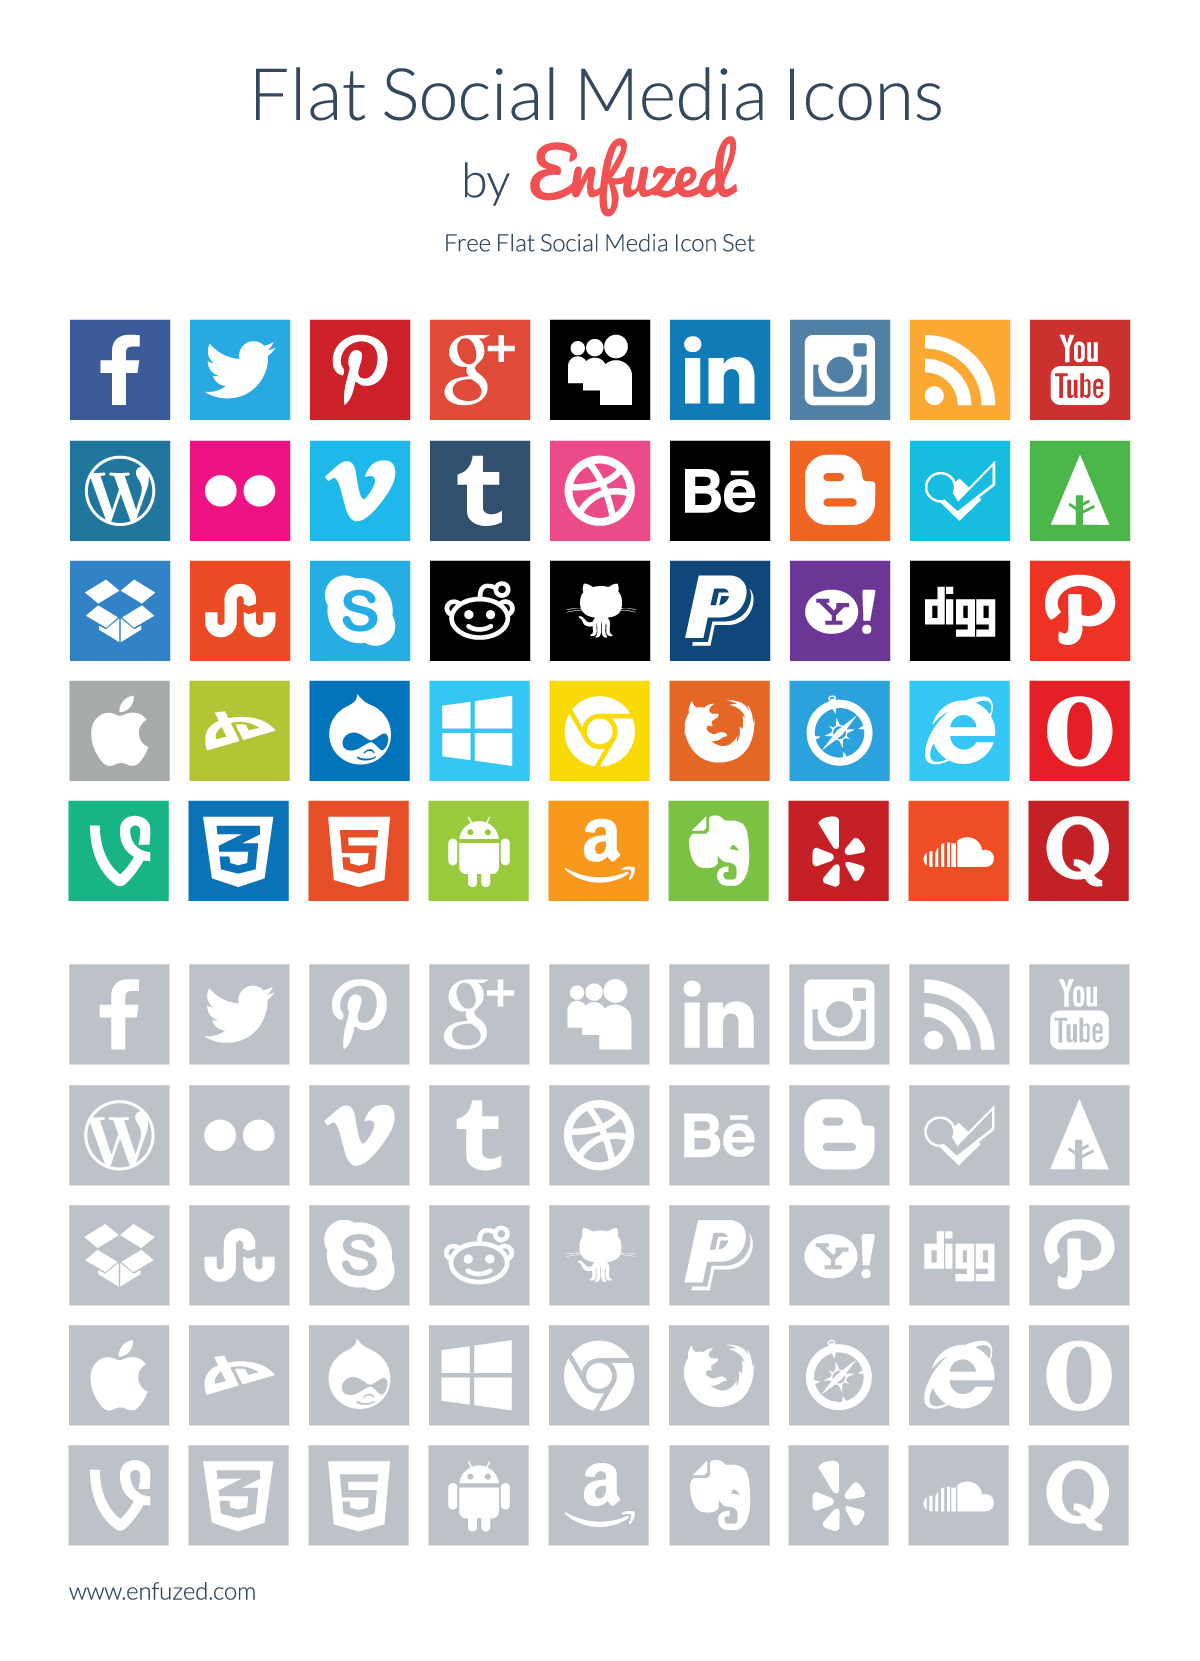 flat social media icons by enfuzed